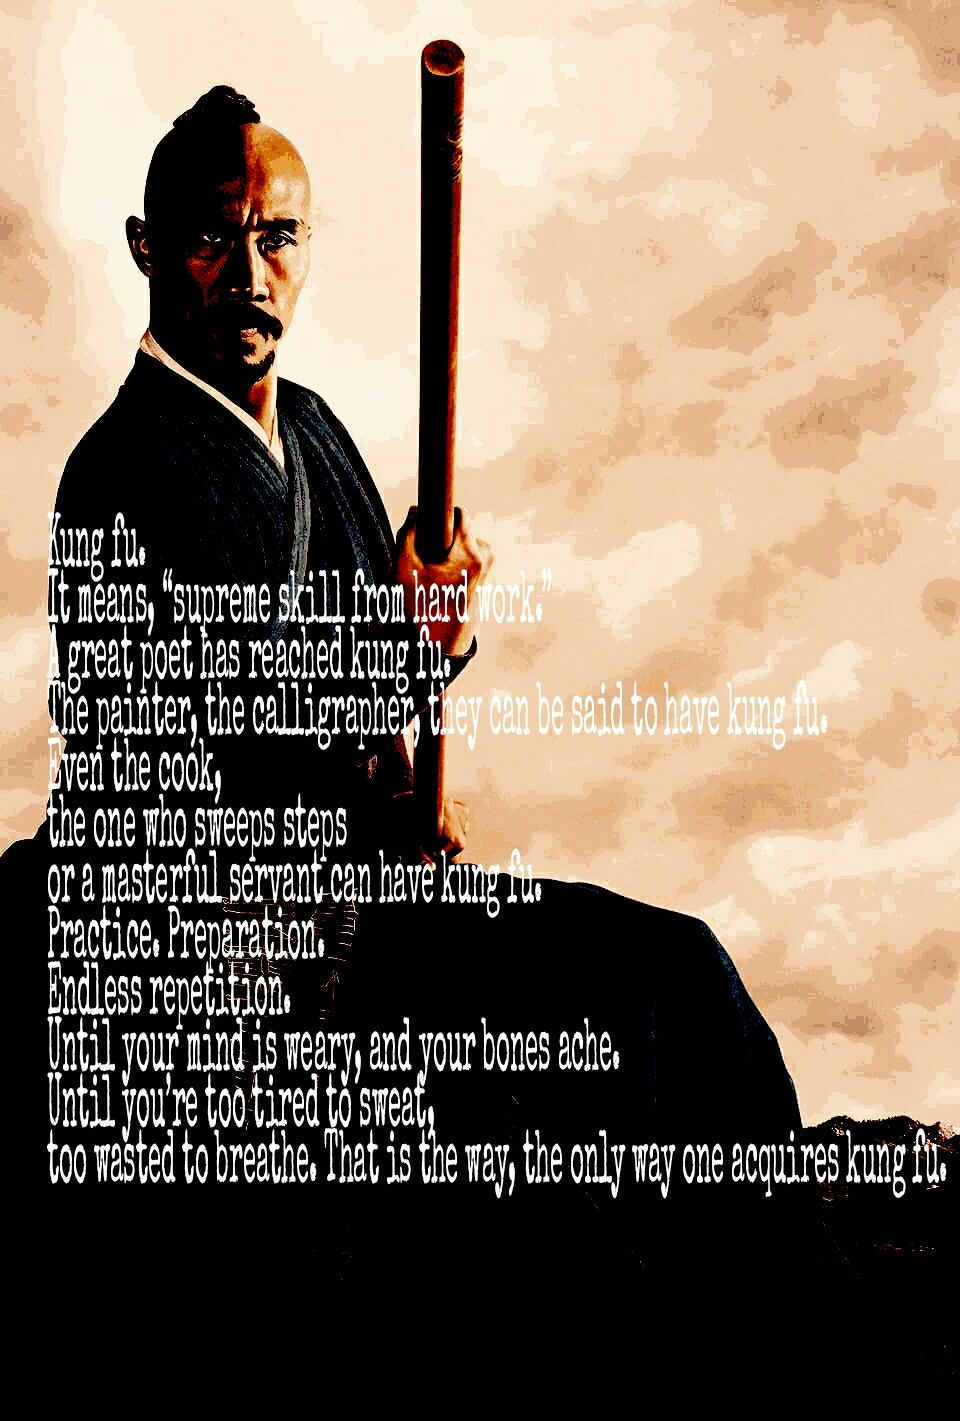 Marco Polo Sifu 100 Eyes on the meaning of Kung Fu. | Kung ...